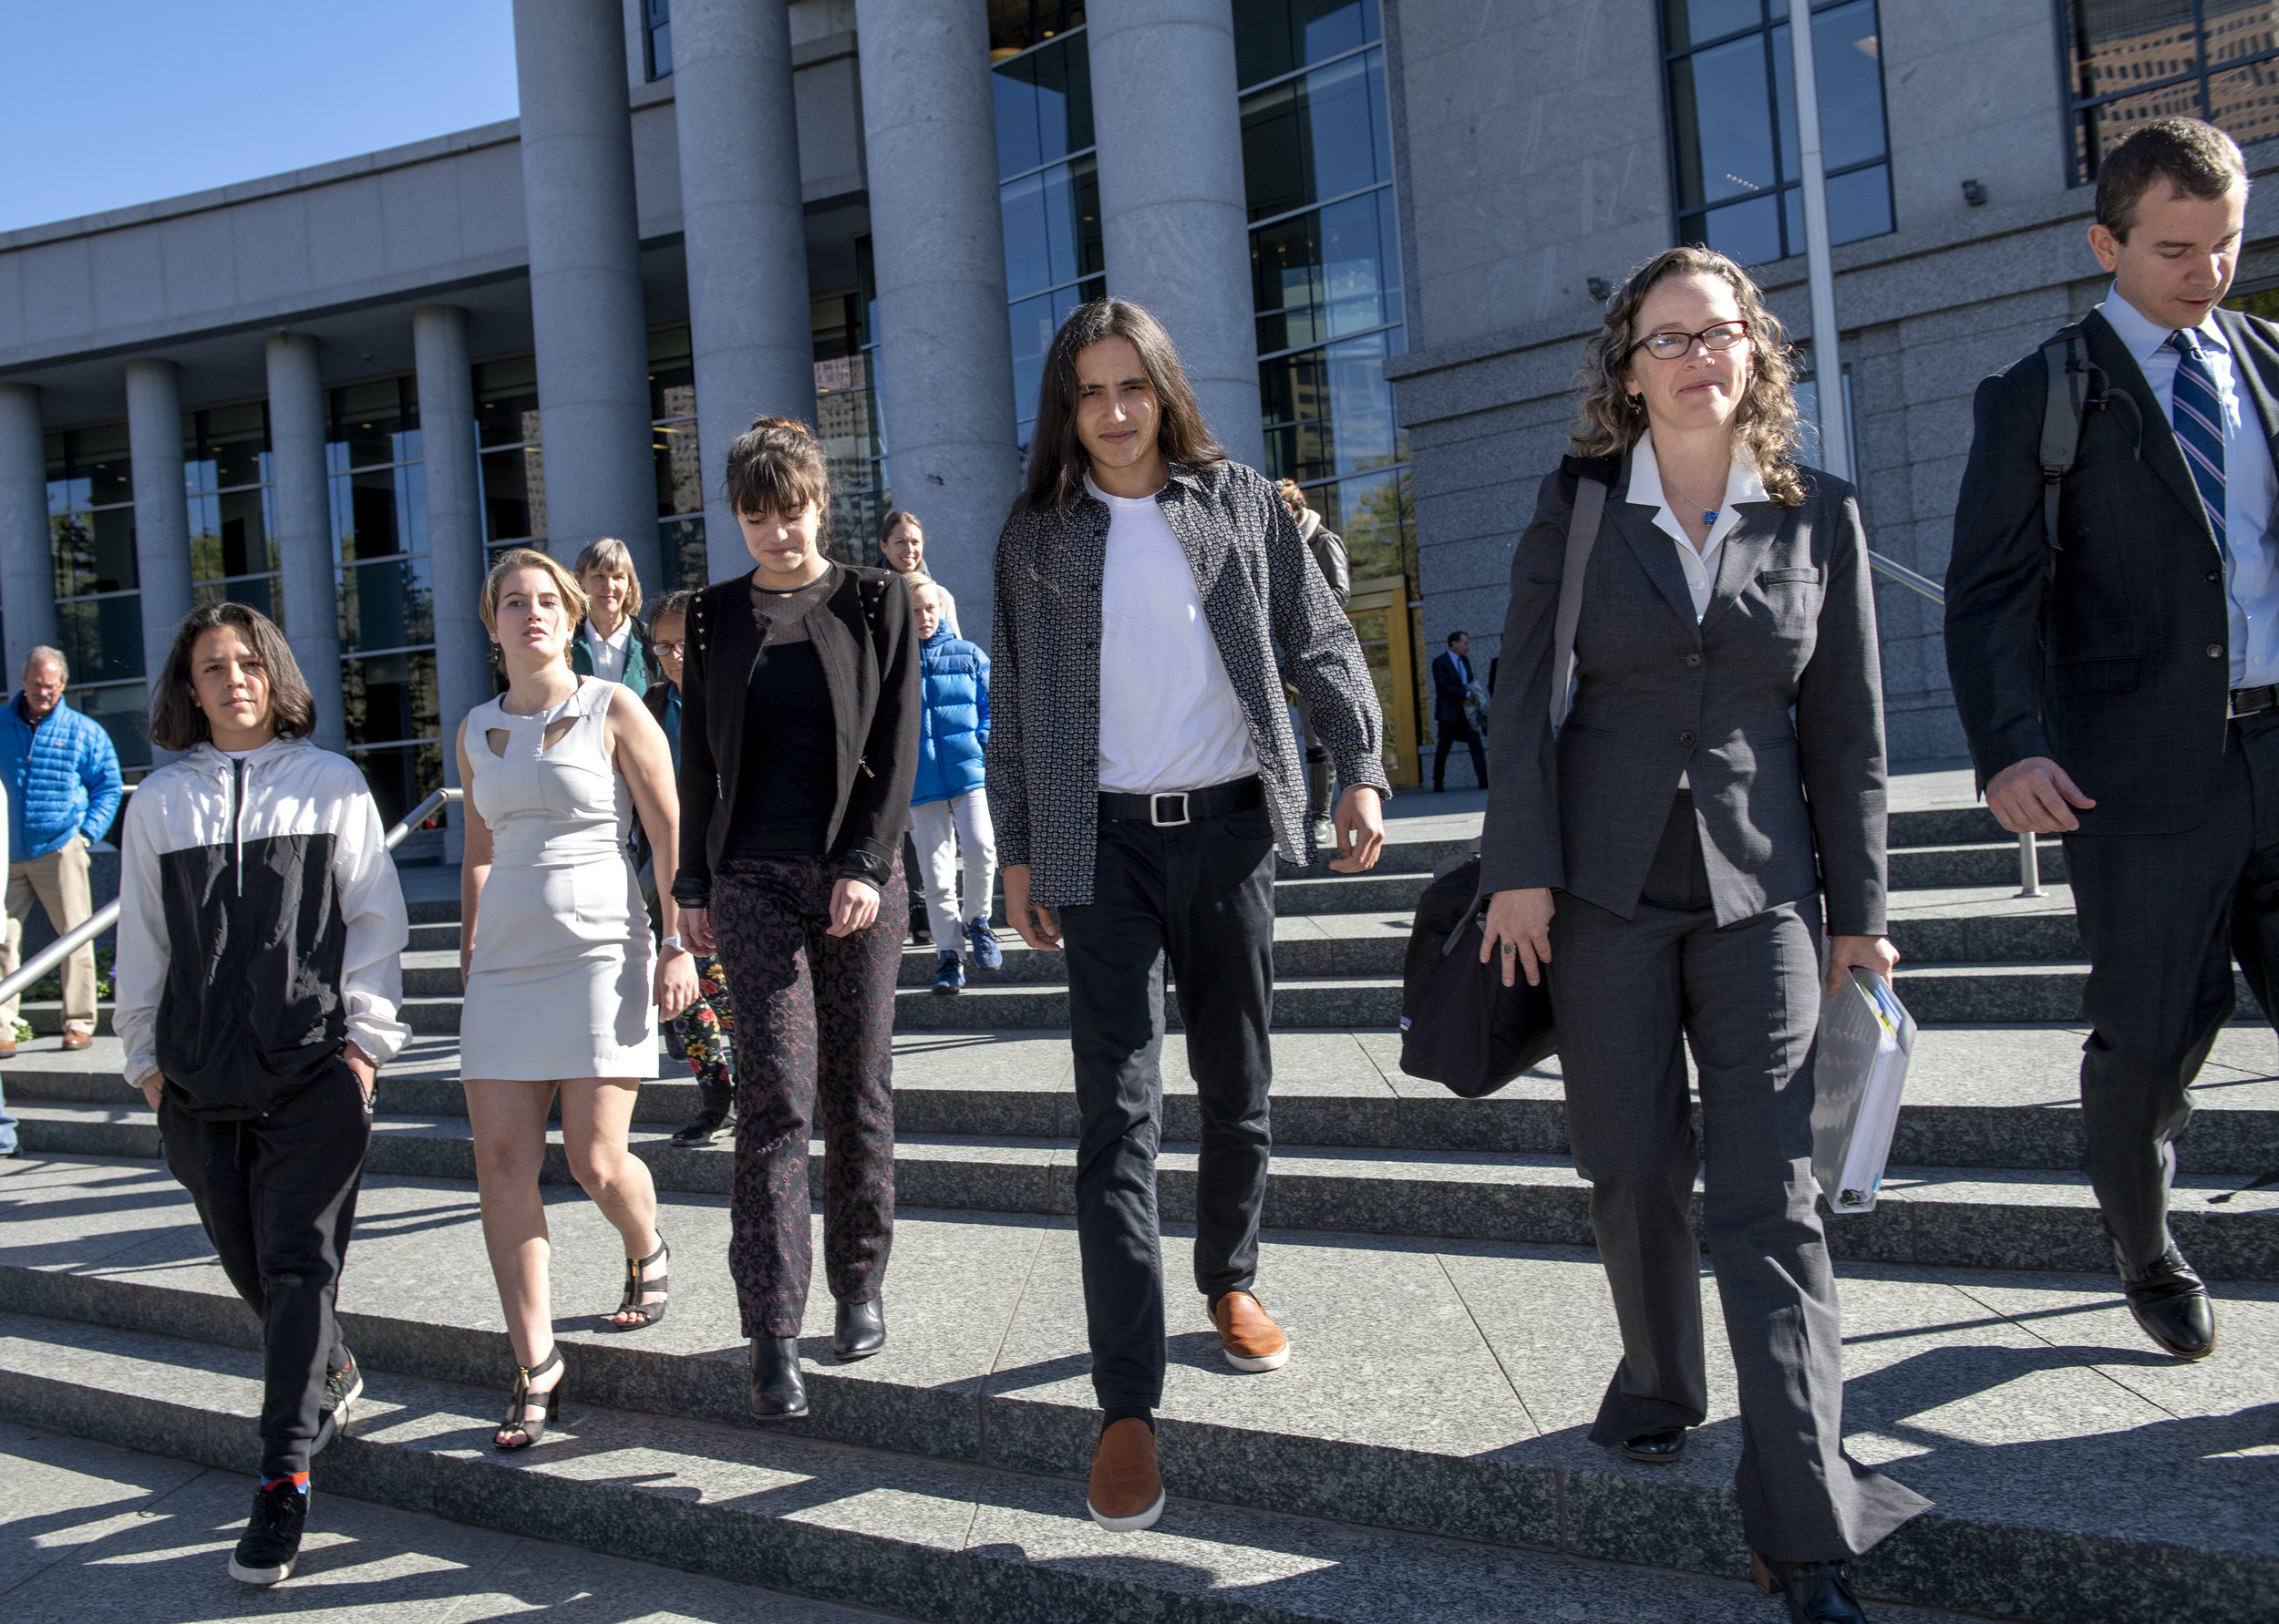 From left, youth plaintiffs Itzcuauhtli, Emma, Aerielle, and Xiuhtezcatl leave the Colorado Supreme Court with their attorneys Julia Olson and Nate Bellinger after oral argument in their climate lawsuit against the Colorado Oil and Gas Conservation Commission on October 16, 2018 in Denver, CO.